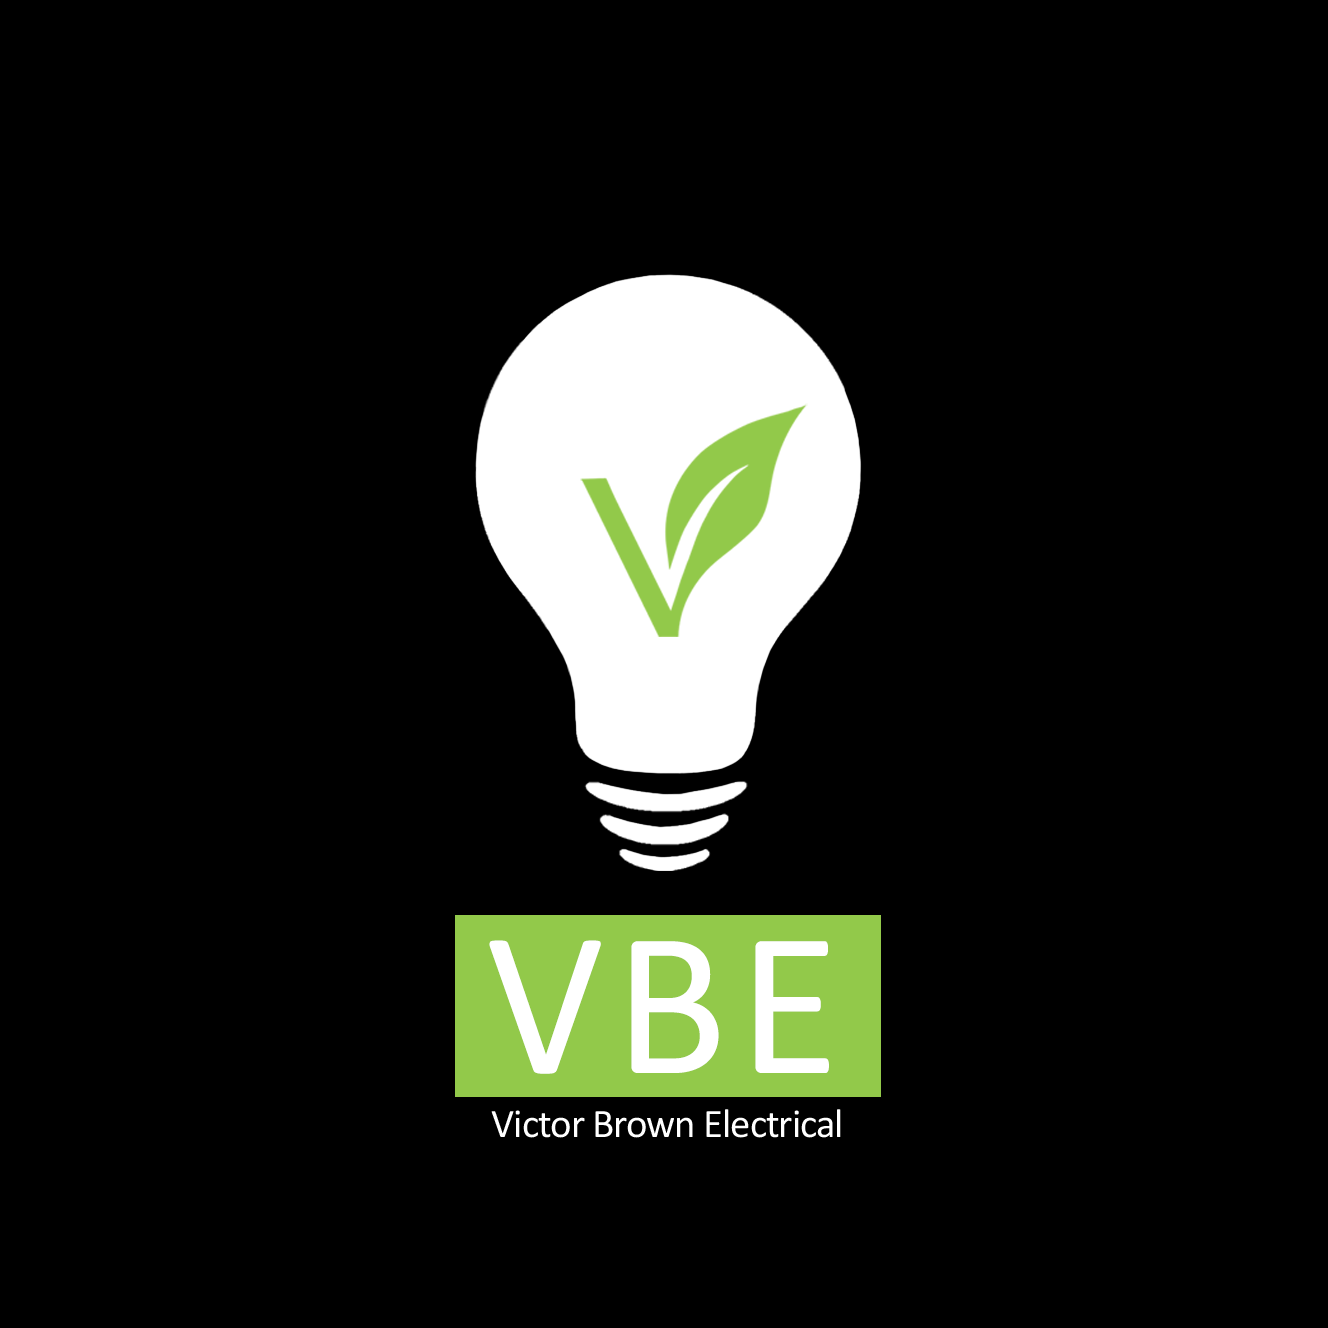 Victor Brown Electrical